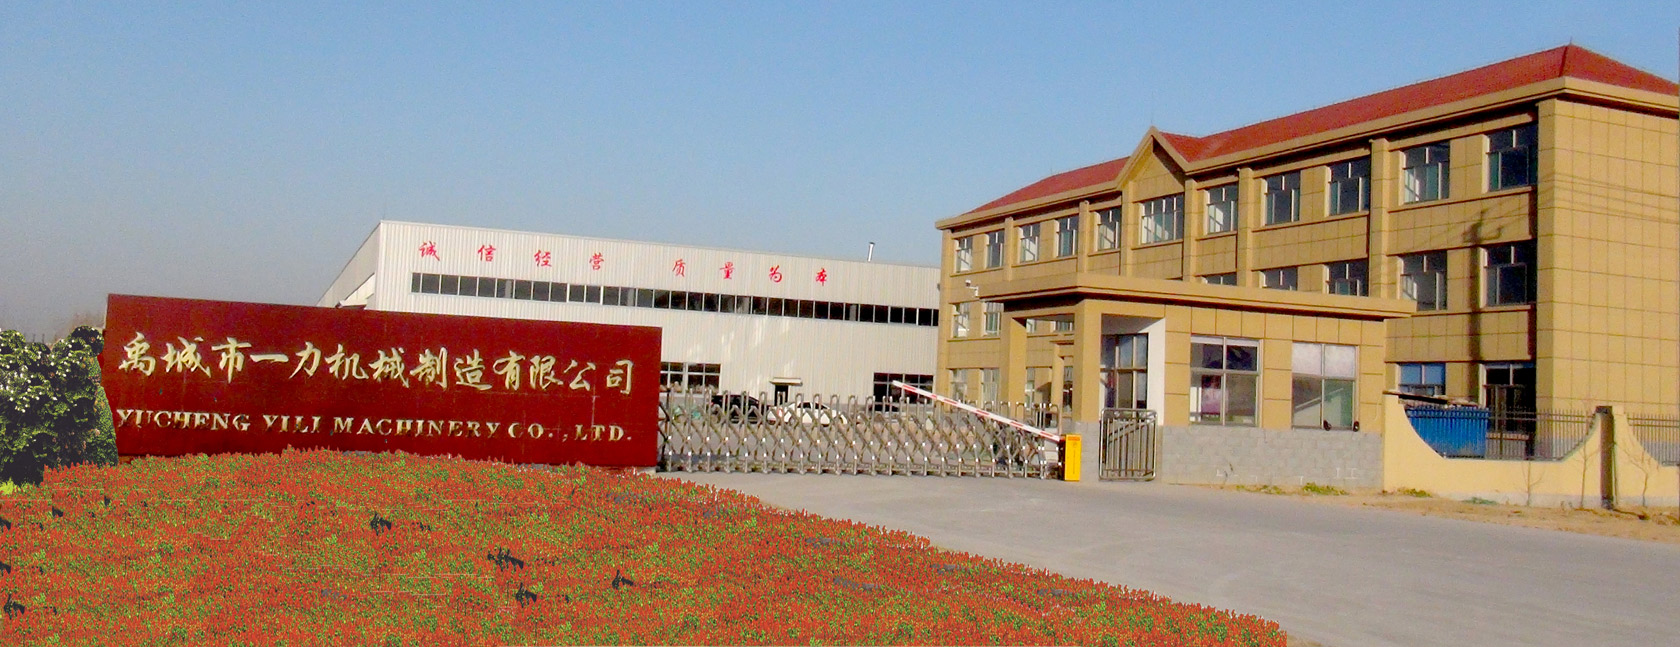 Yucheng Yili Machinery Co., Ltd